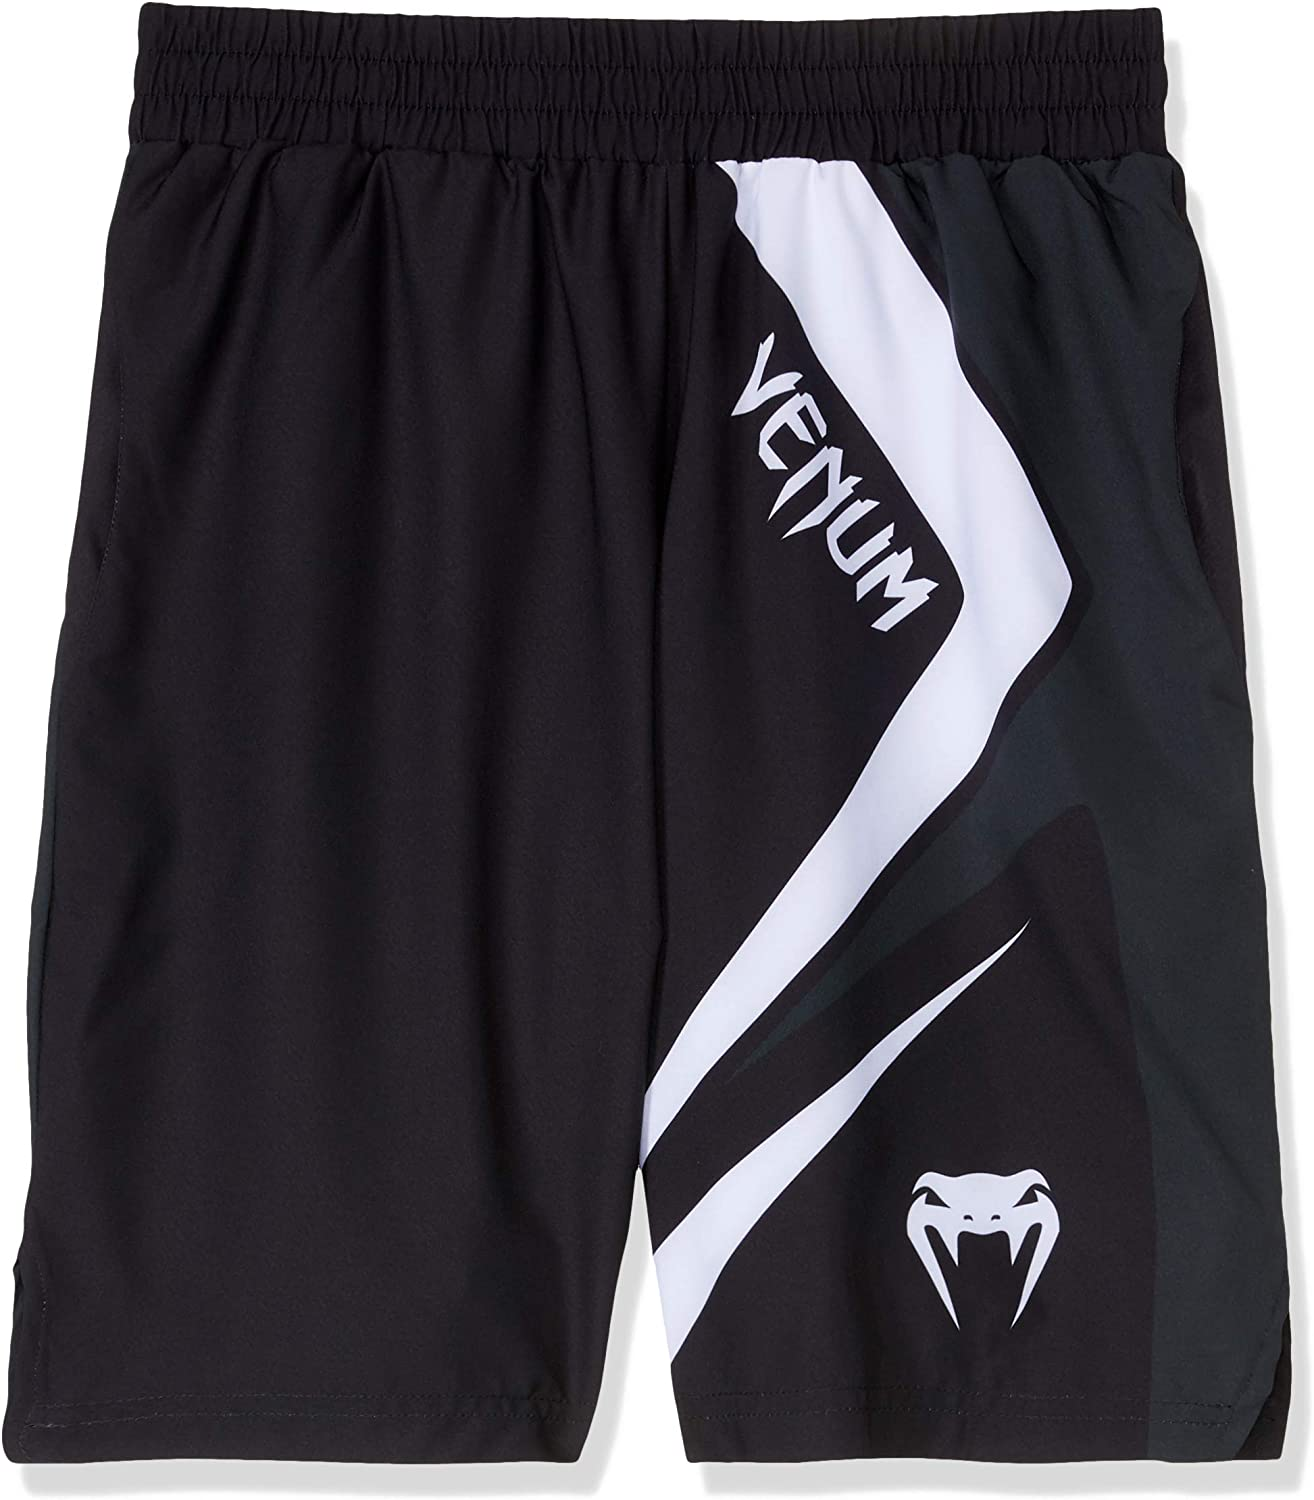 Amazon Com Venum Contender 4 0 Fitness Shorts Men Martial Art Mma Ufc Bjj Clothing Alex perez in what should be a cracking night for mma fans. venum contender 4 0 fitness shorts men martial art mma ufc bjj